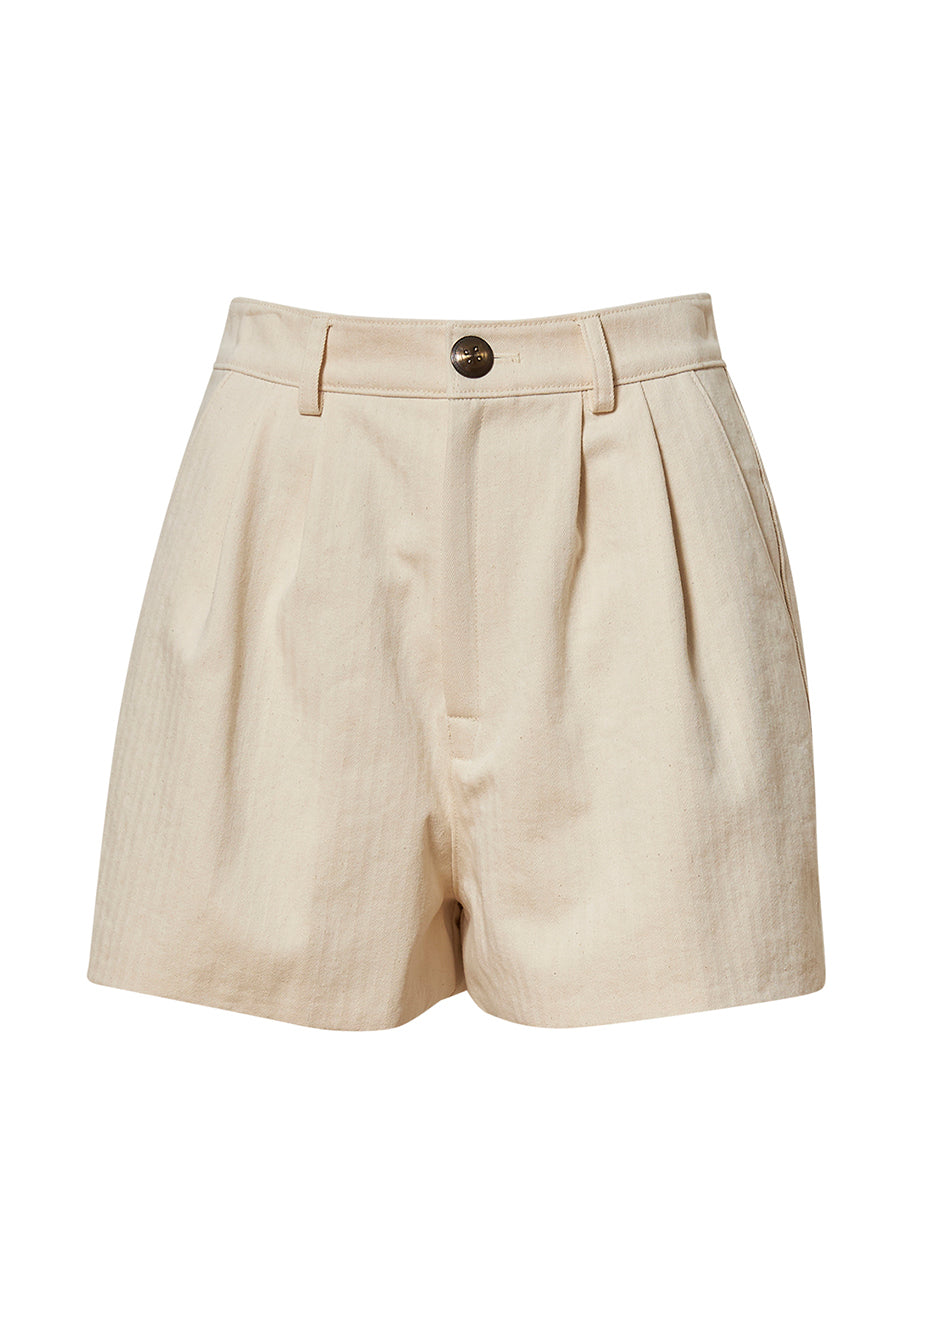 Cotton Jacquard Shorts